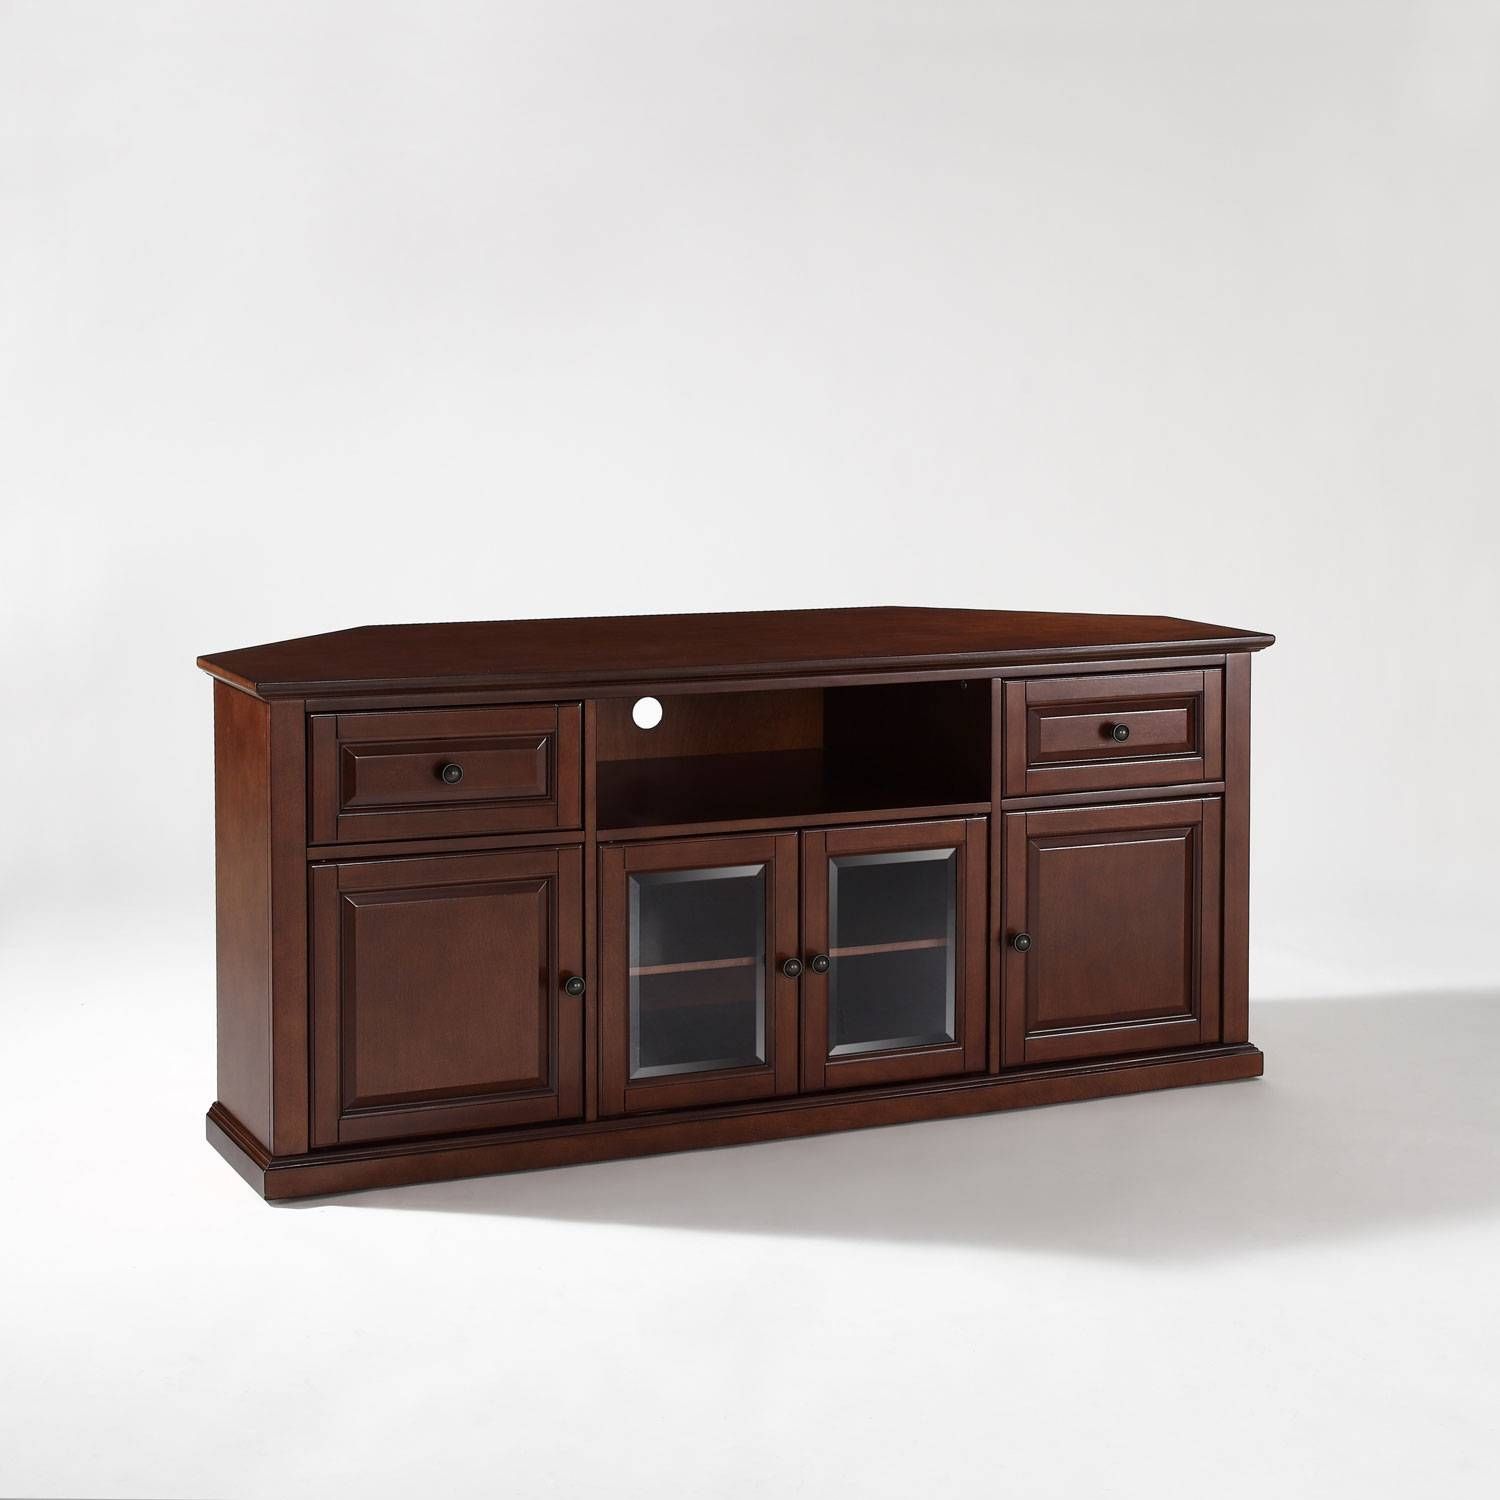 60 Inch Corner Tv Stand In Vintage Mahogany Crosley Furniture for Corner Tv Stands With Drawers (Image 2 of 15)